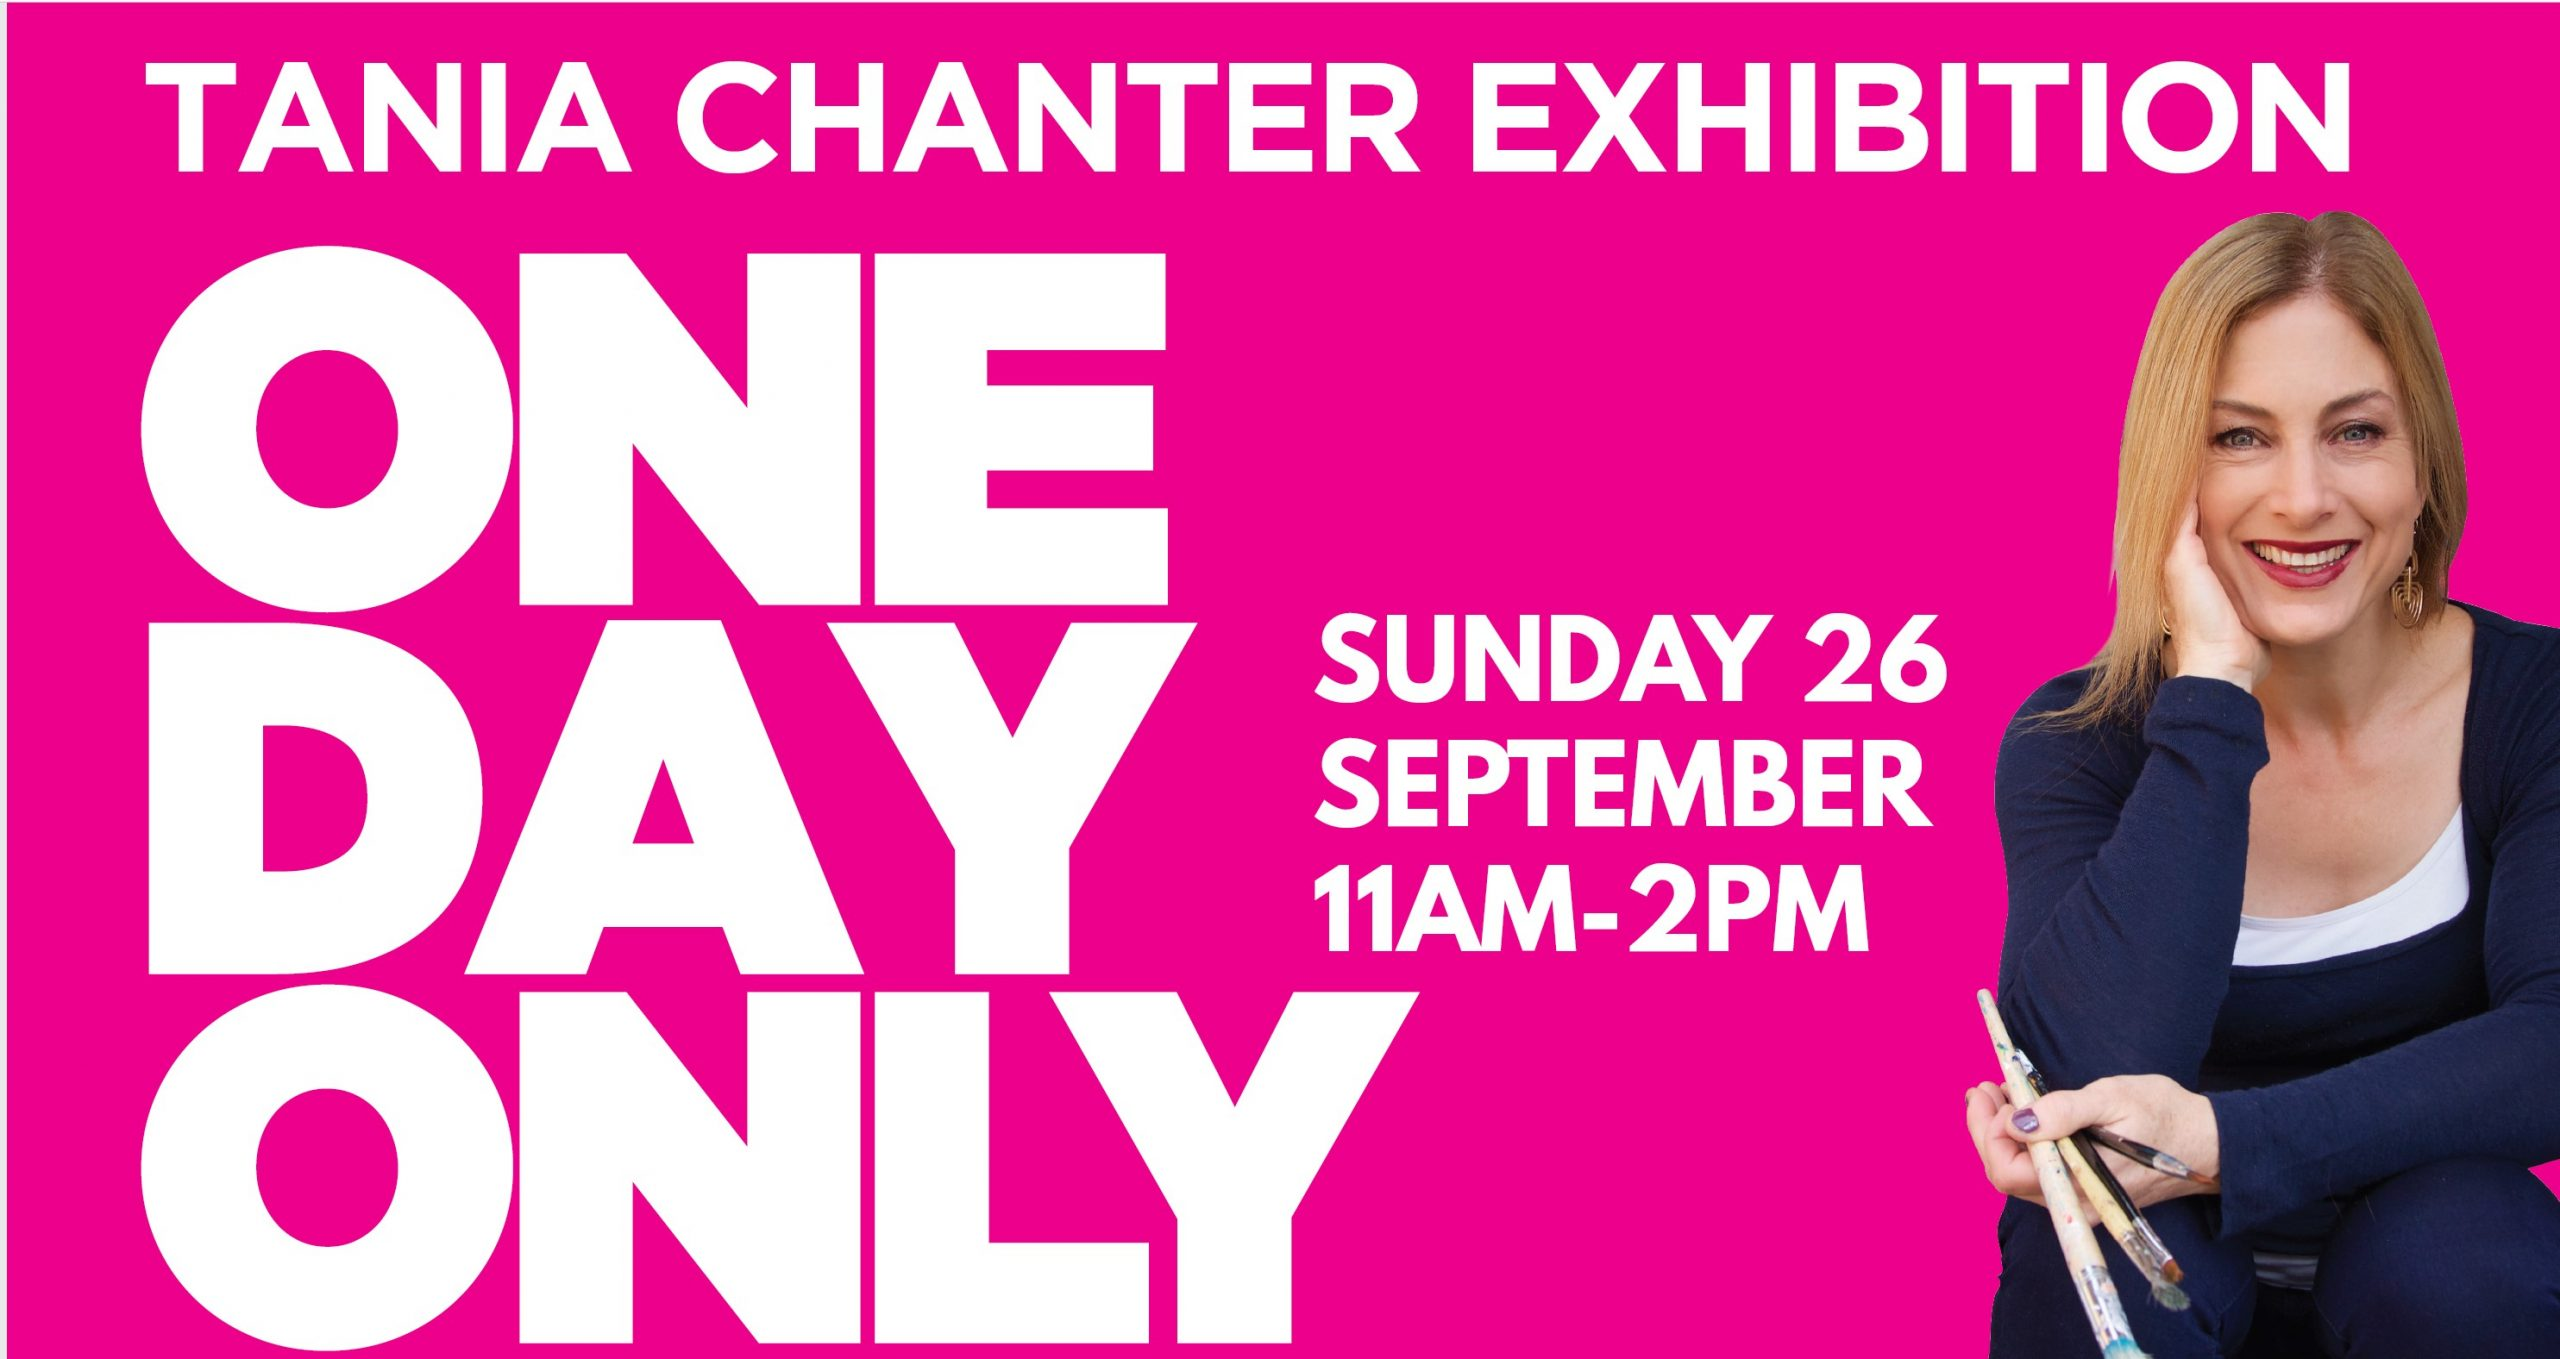 Tania Chanter Exhibition  One Day Only  by Canterbury International Hotel